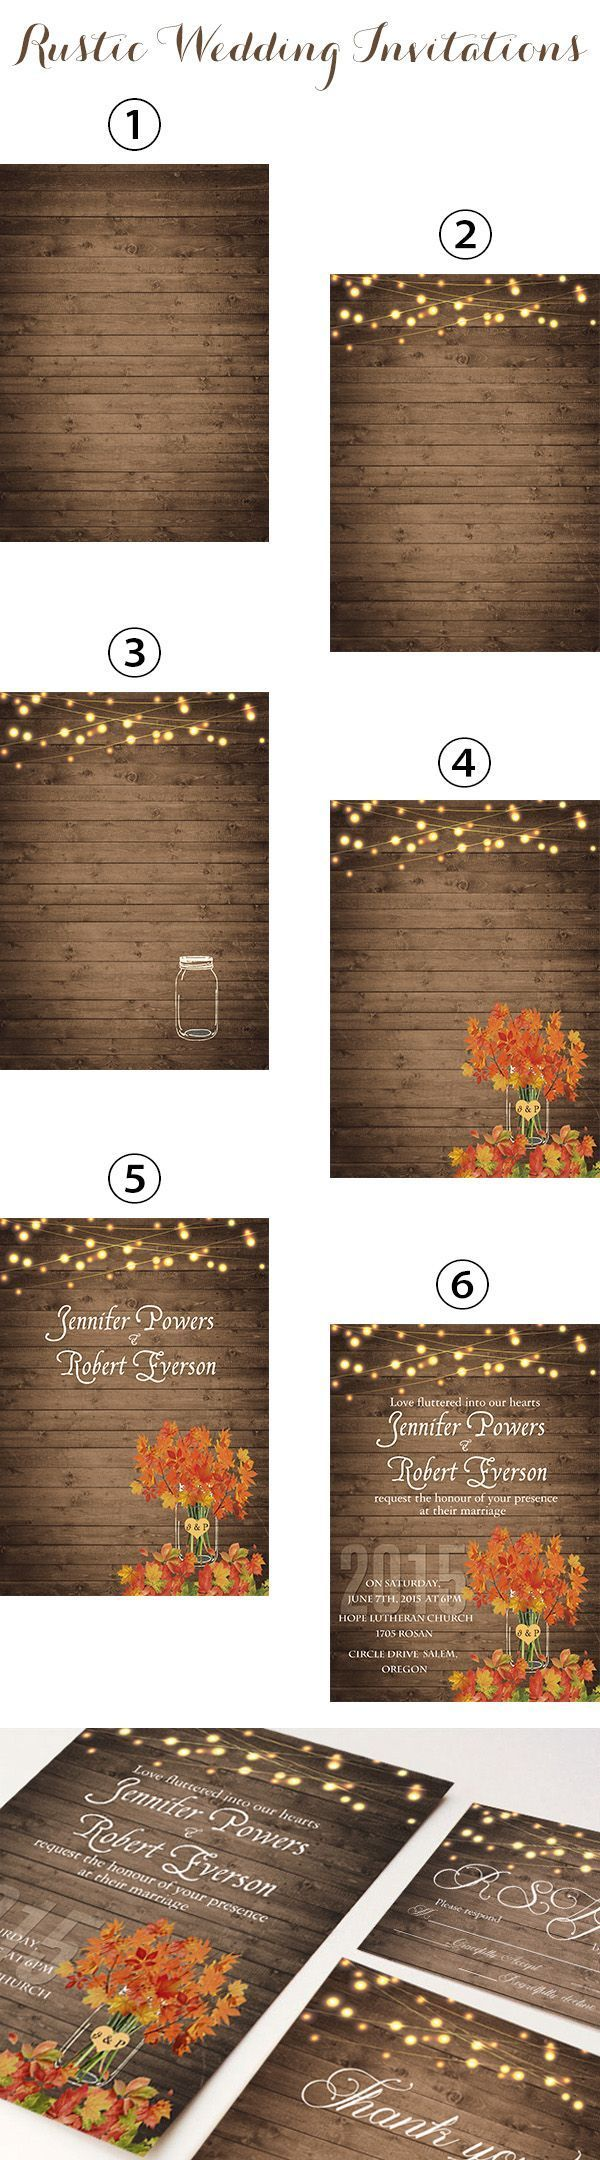 diy fall wedding invitations for country rustic